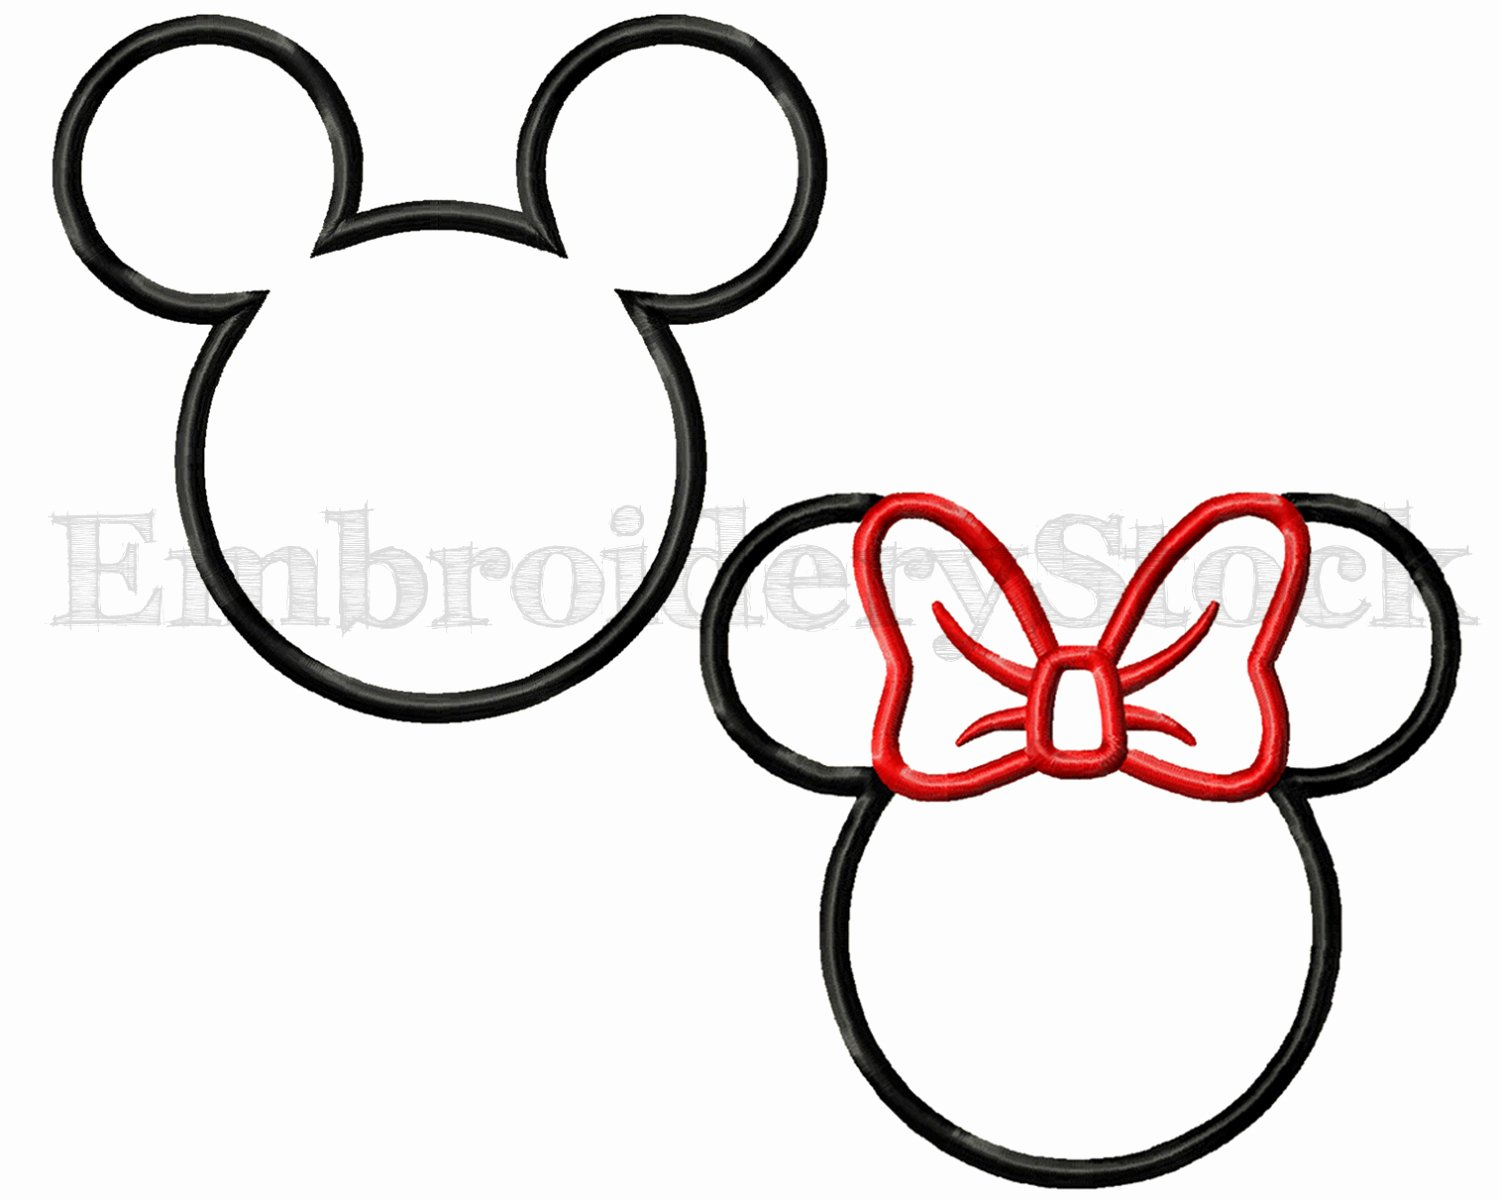 Minnie Mouse Head Silhouette Printable Elegant Minnie Mouse Head Outline – 101 Clip Art